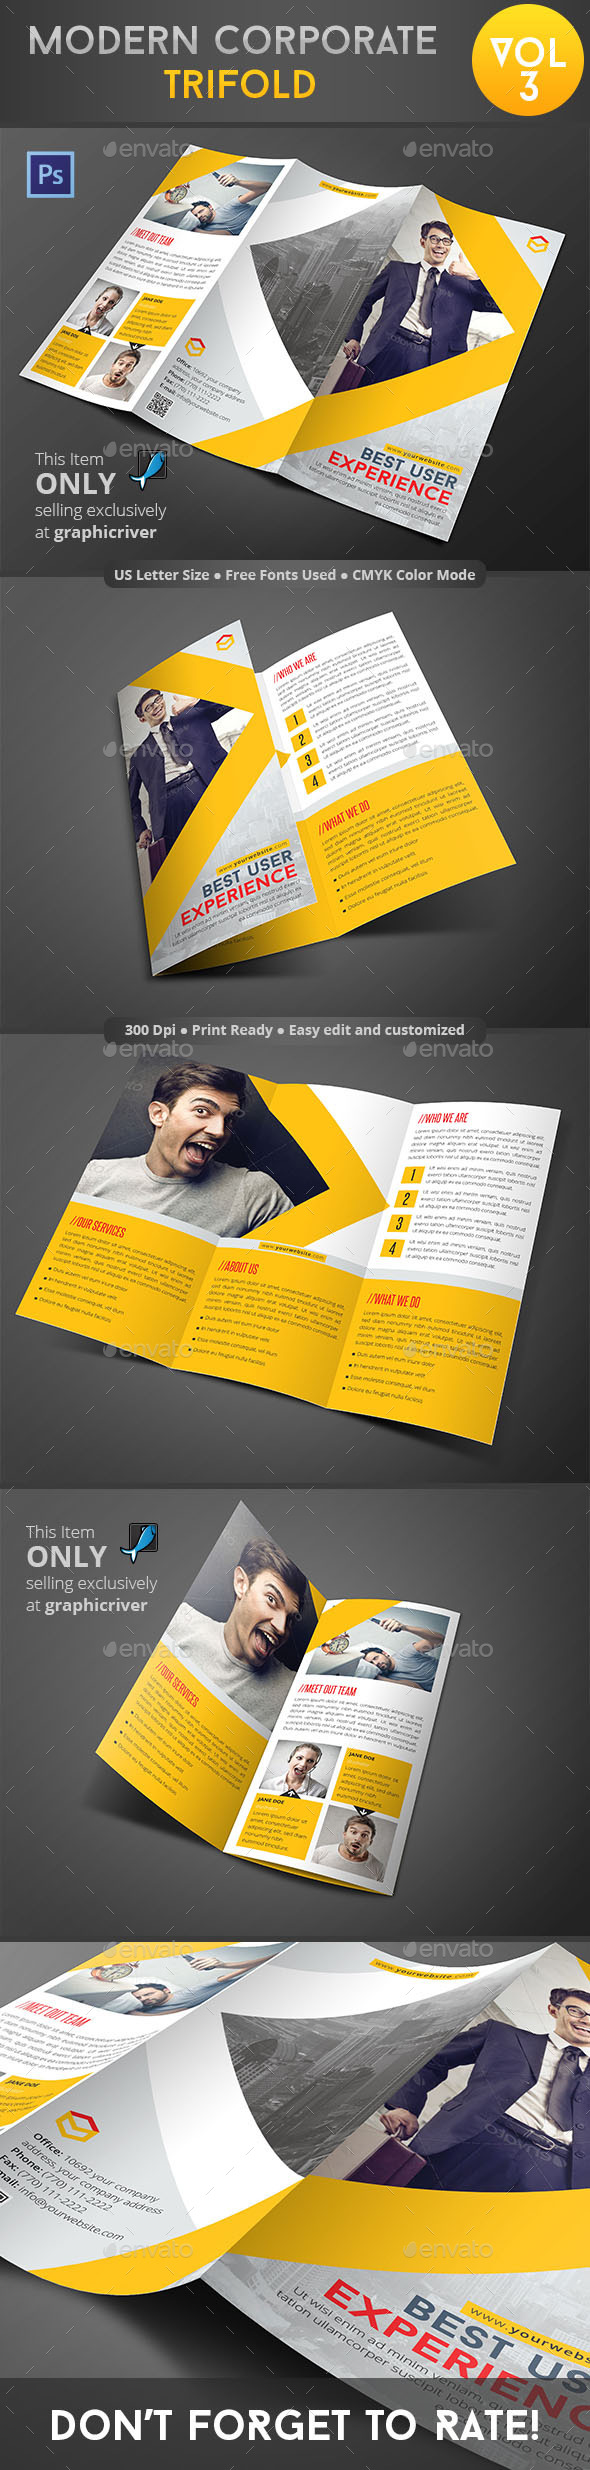 GraphicRiver Modern Corporate Trifold Vol 3 9110236